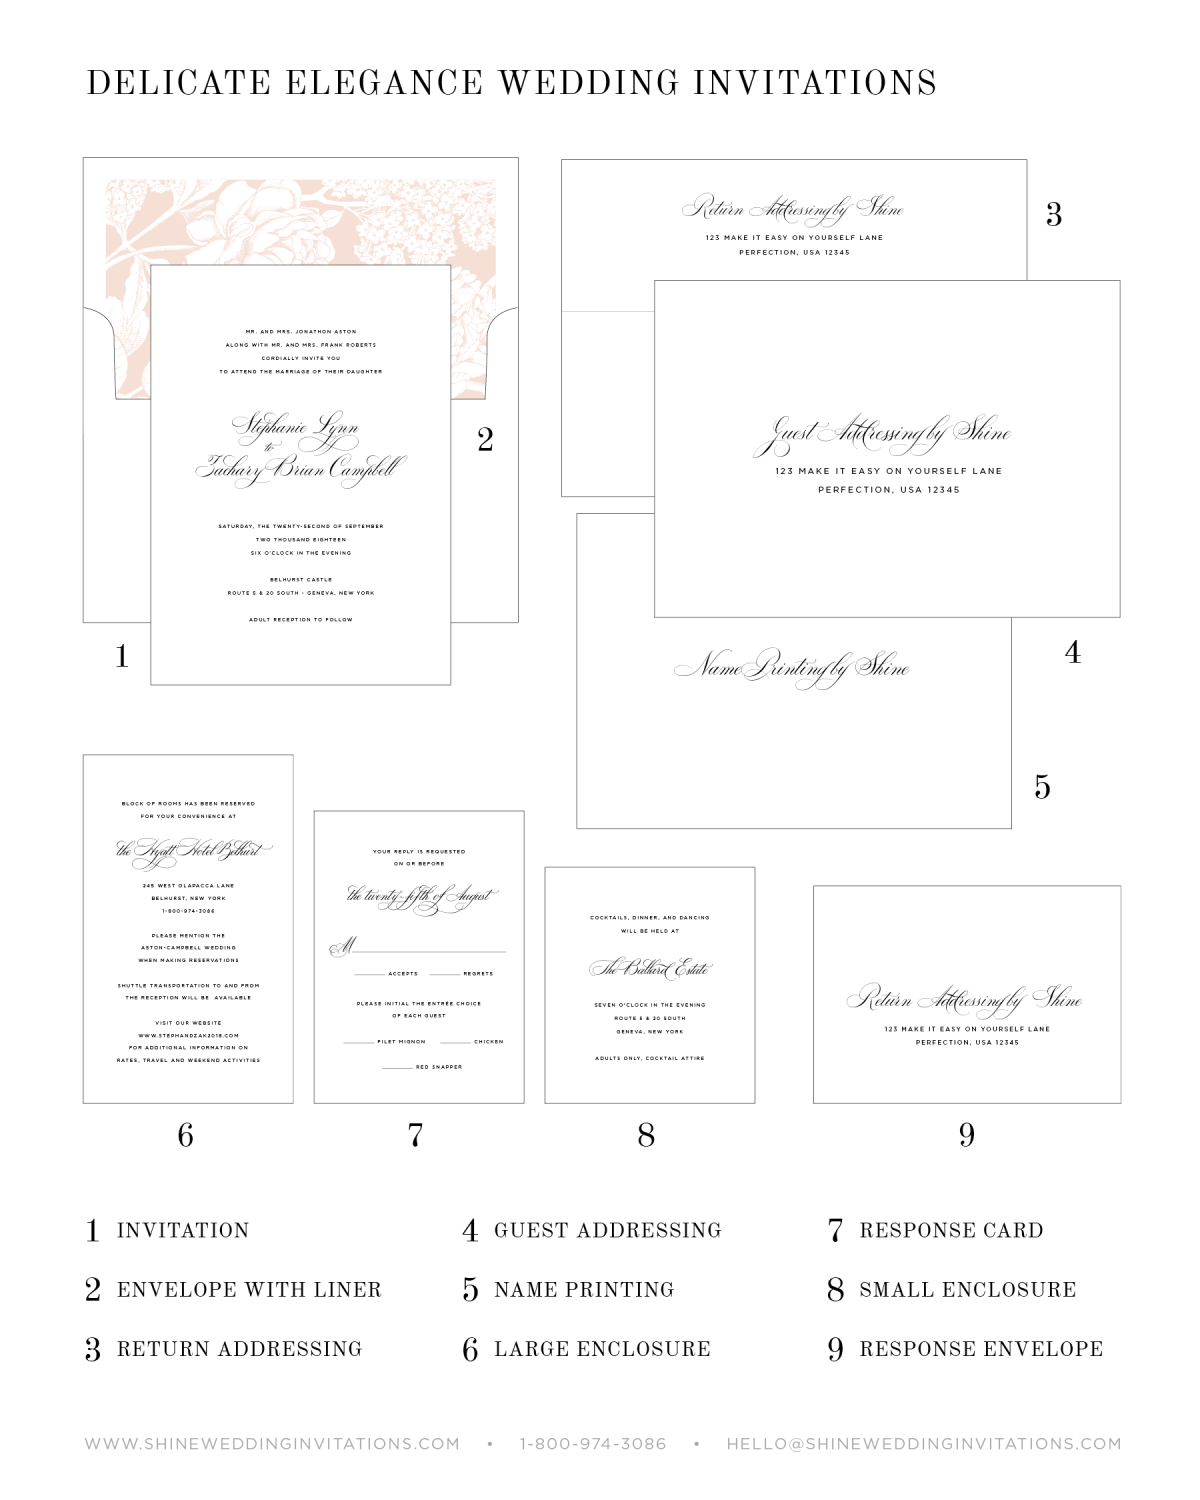 Wedding Invitation Components and Pieces Explanation